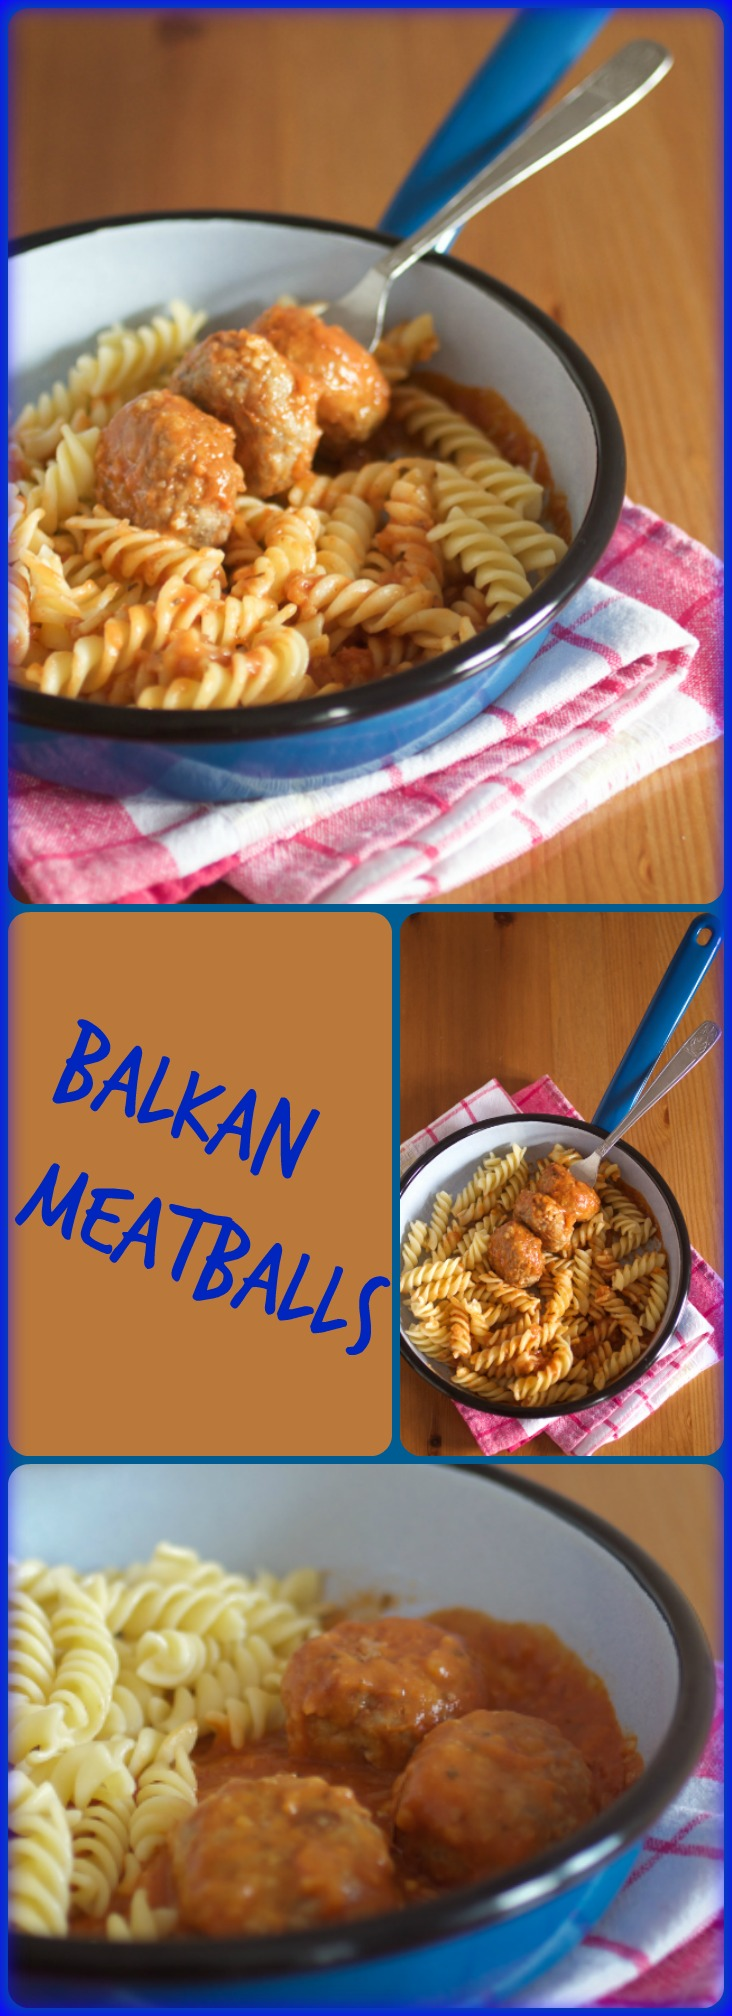 Balkan meatballs: mouthwatering, with a start to finish time of 35 minutes. What more can you ask for?